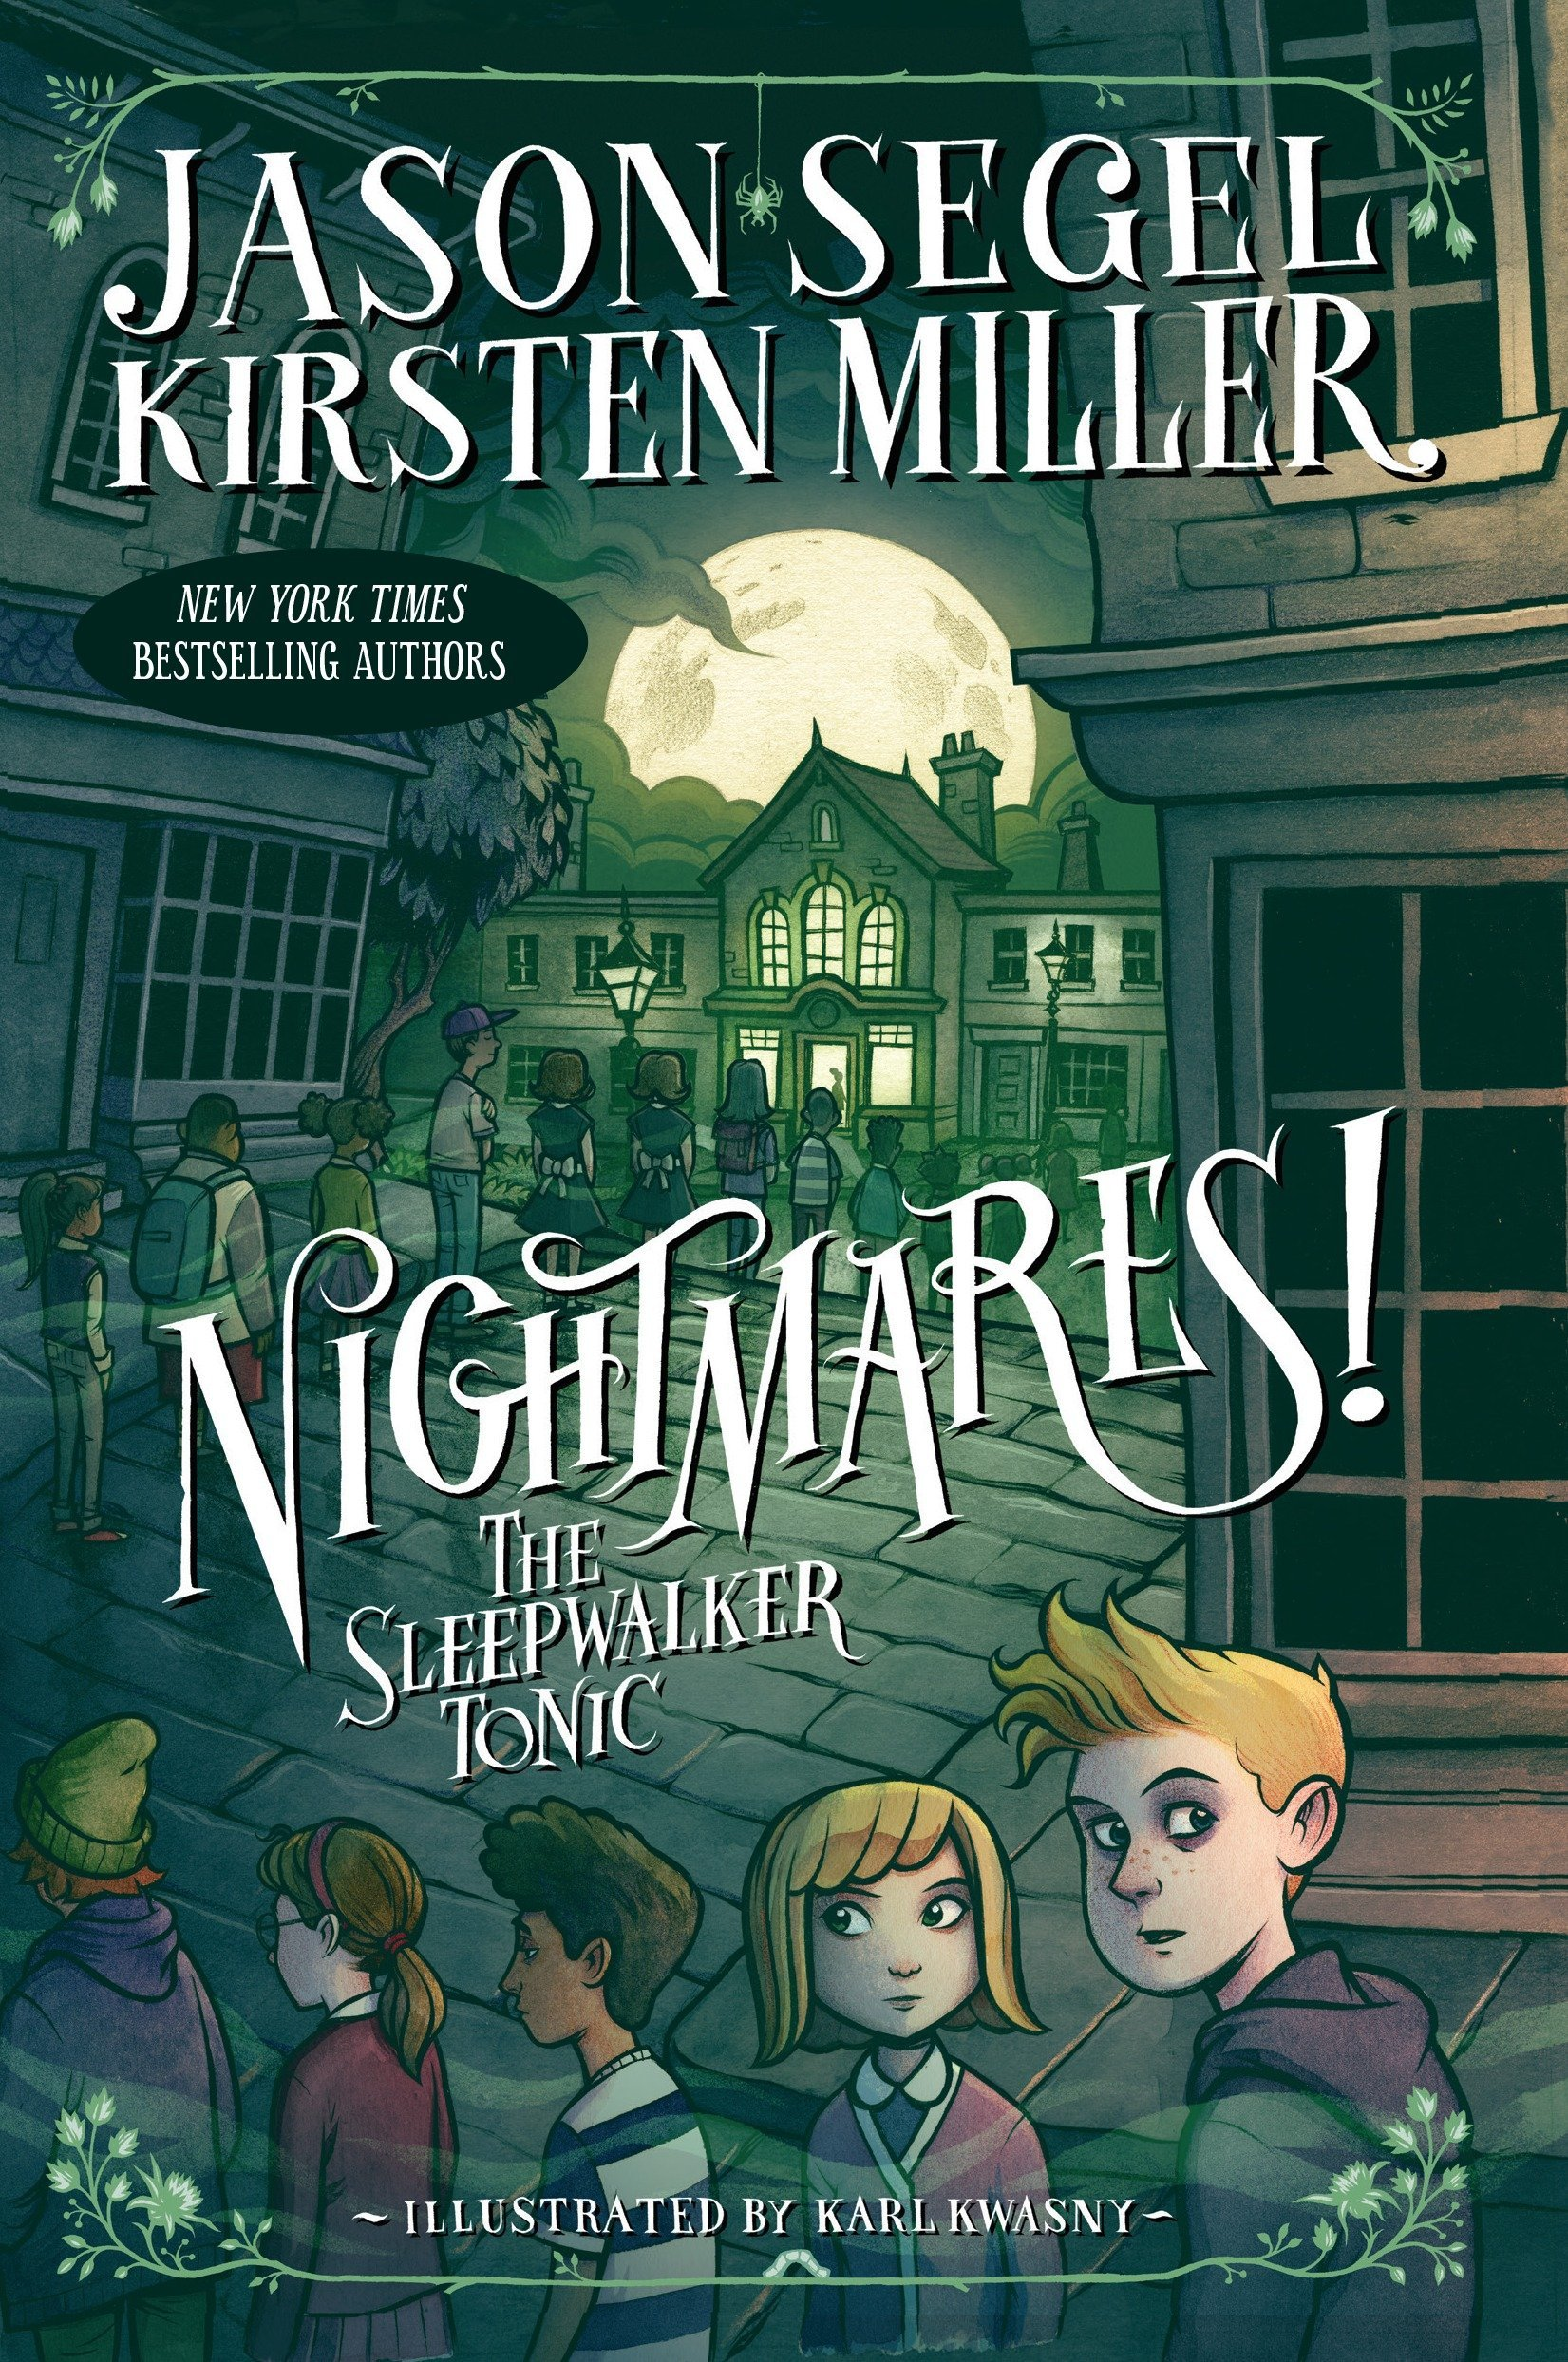 Nightmares! The Sleepwalker Tonic by Jason Segel & Kirsten Miller